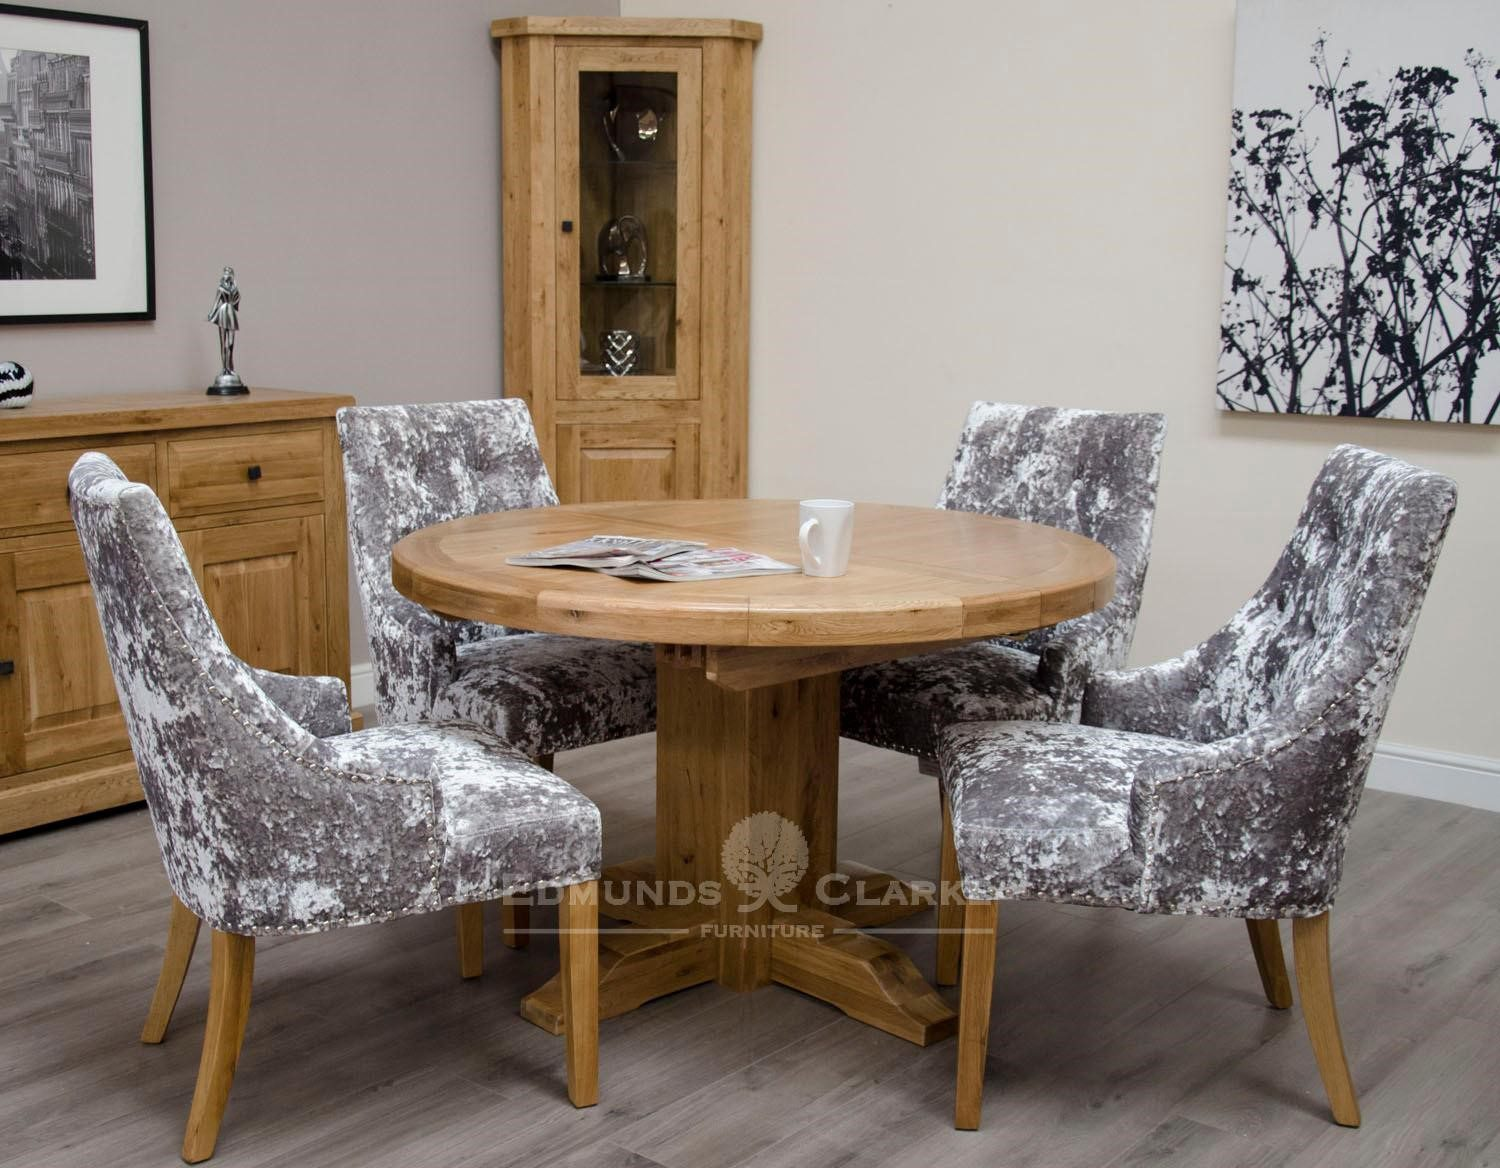 Melford solid oak round extending table showing closed but includes 165cm one leaf that stores underneath will sit 4 to 6 people comfortably DLXRNDEXT